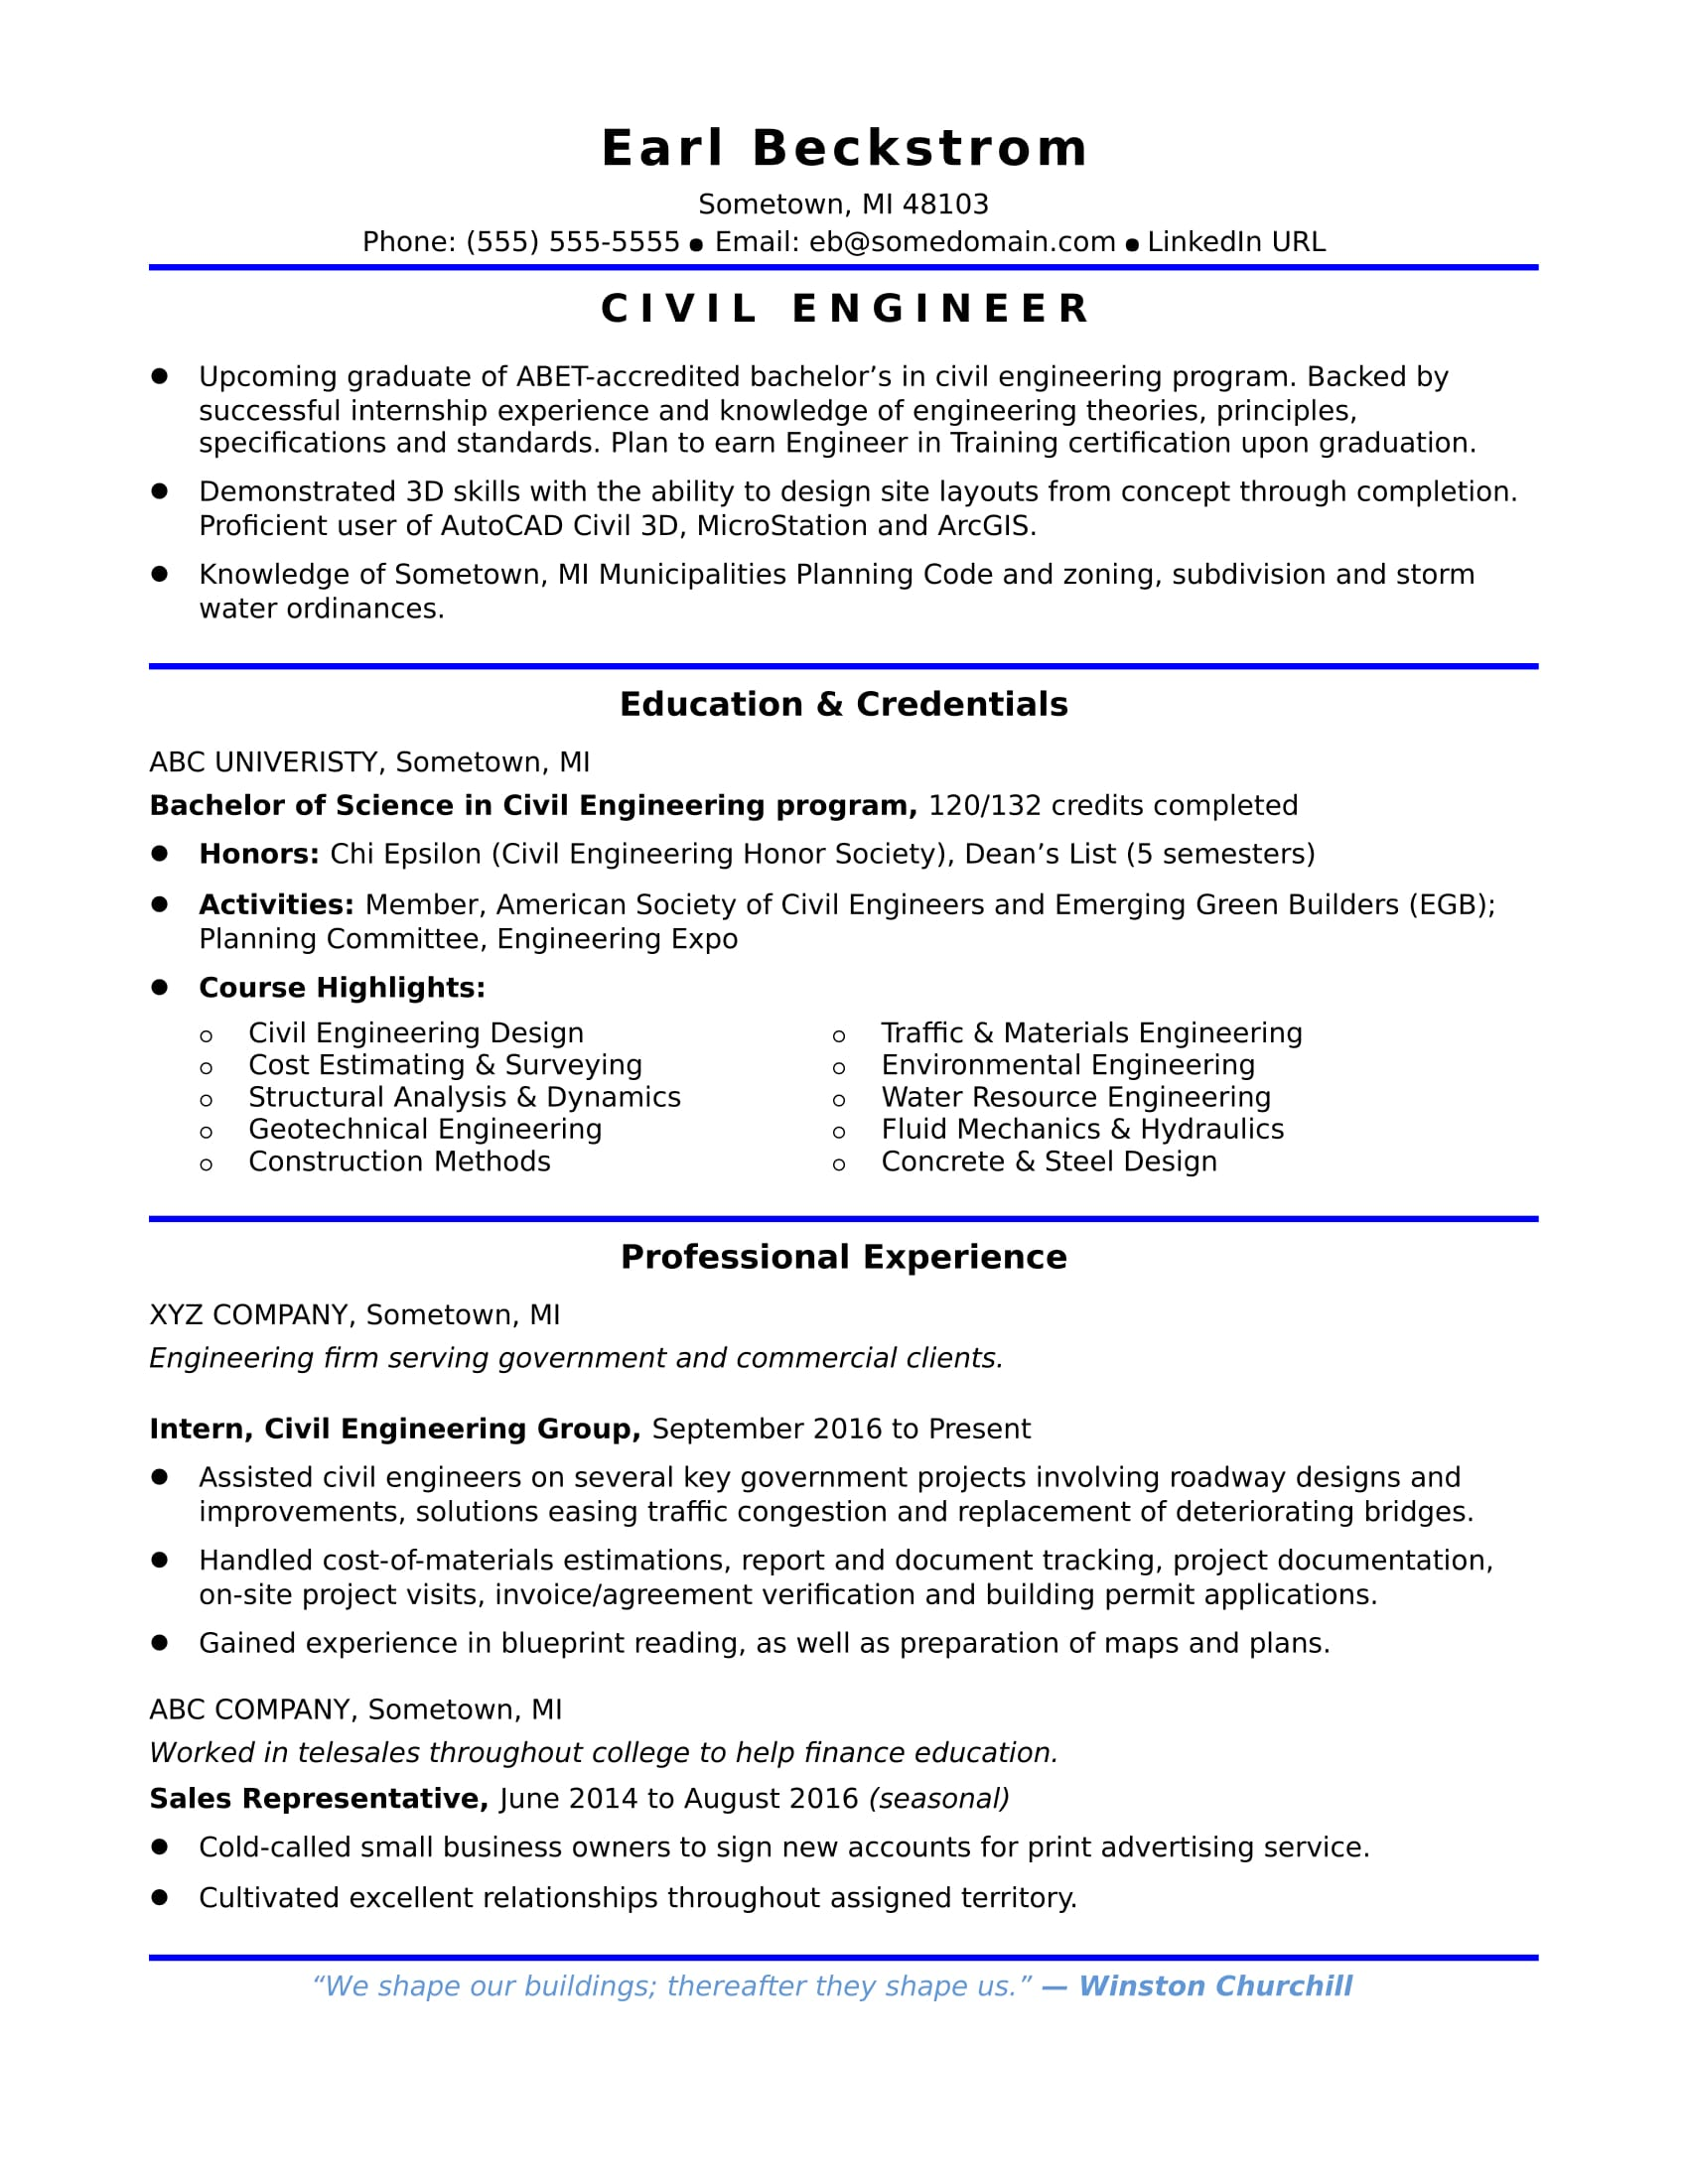 Awesome Sample Resume For An Entry Level Civil Engineer For Civil Engineering Resume Examples